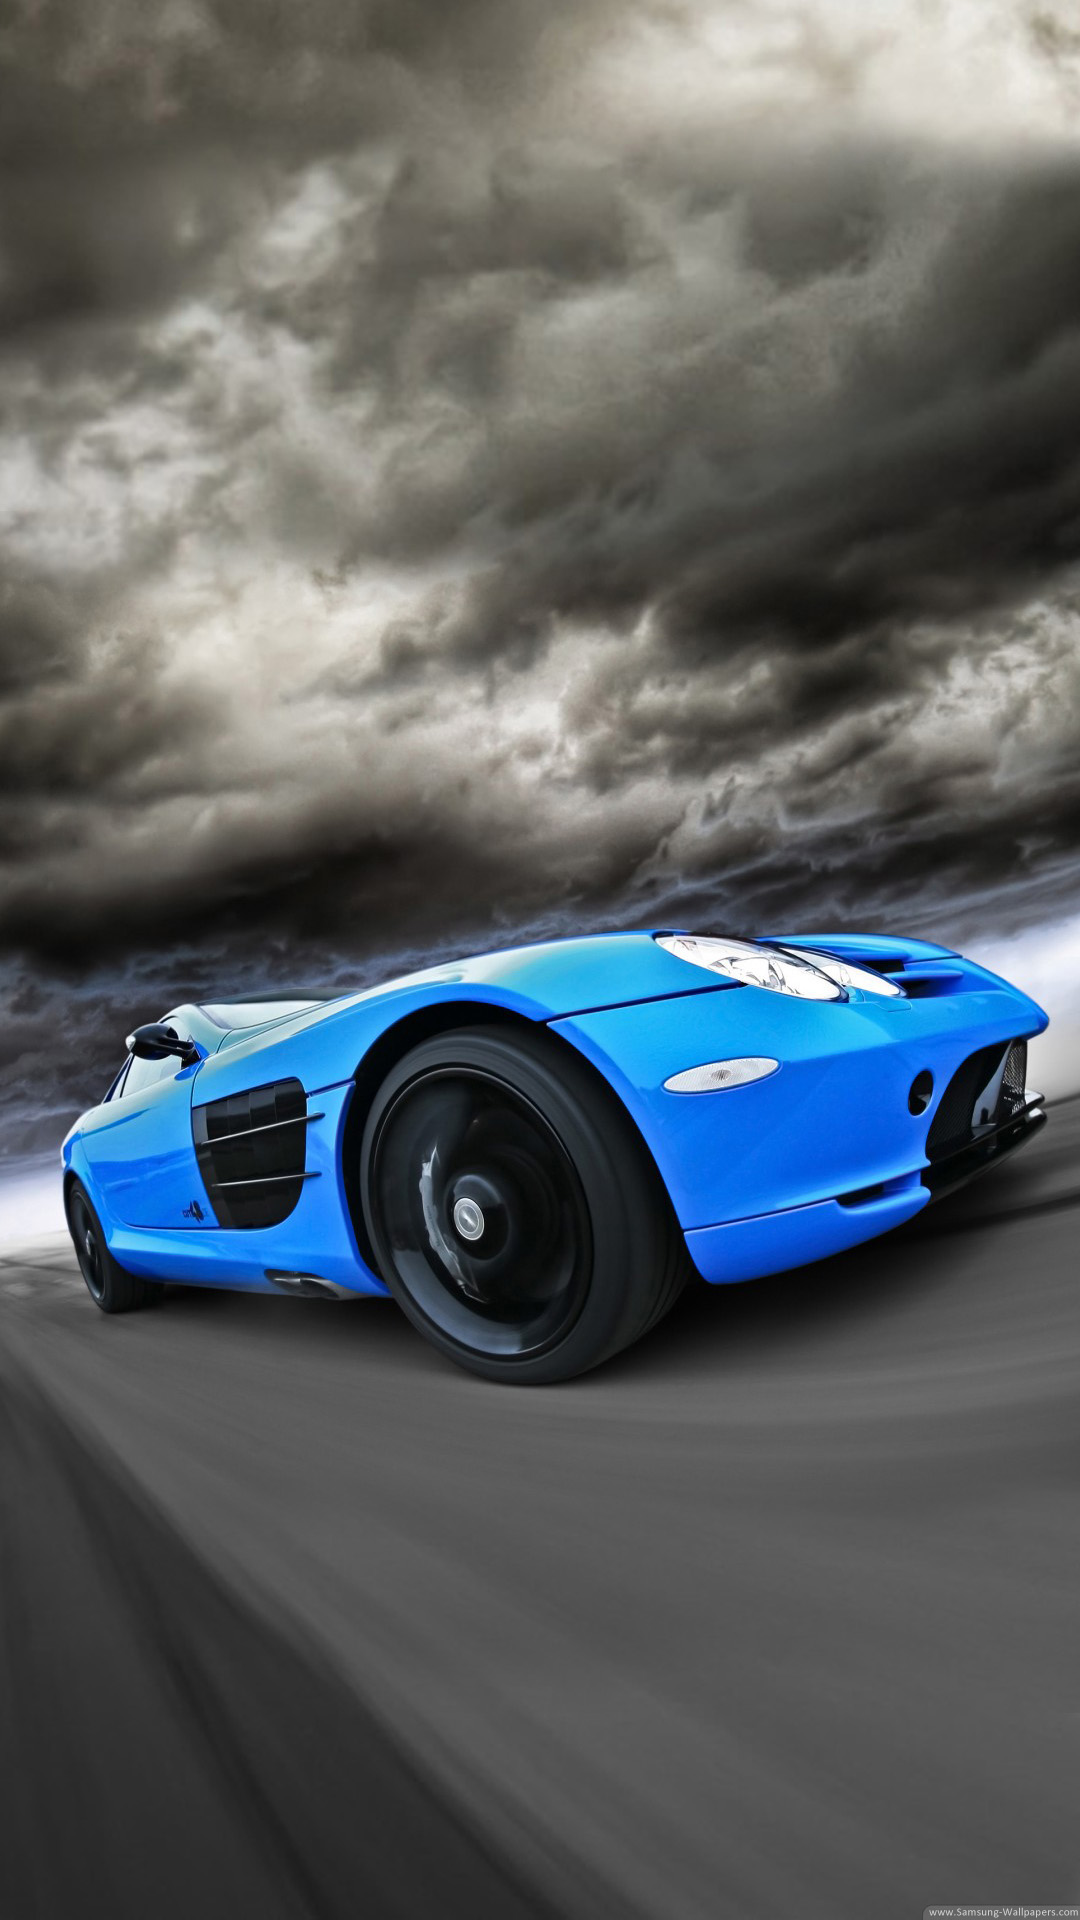 Stylish Hair Style Video 42 Exotic Car Wallpapers For The Speed Lovers